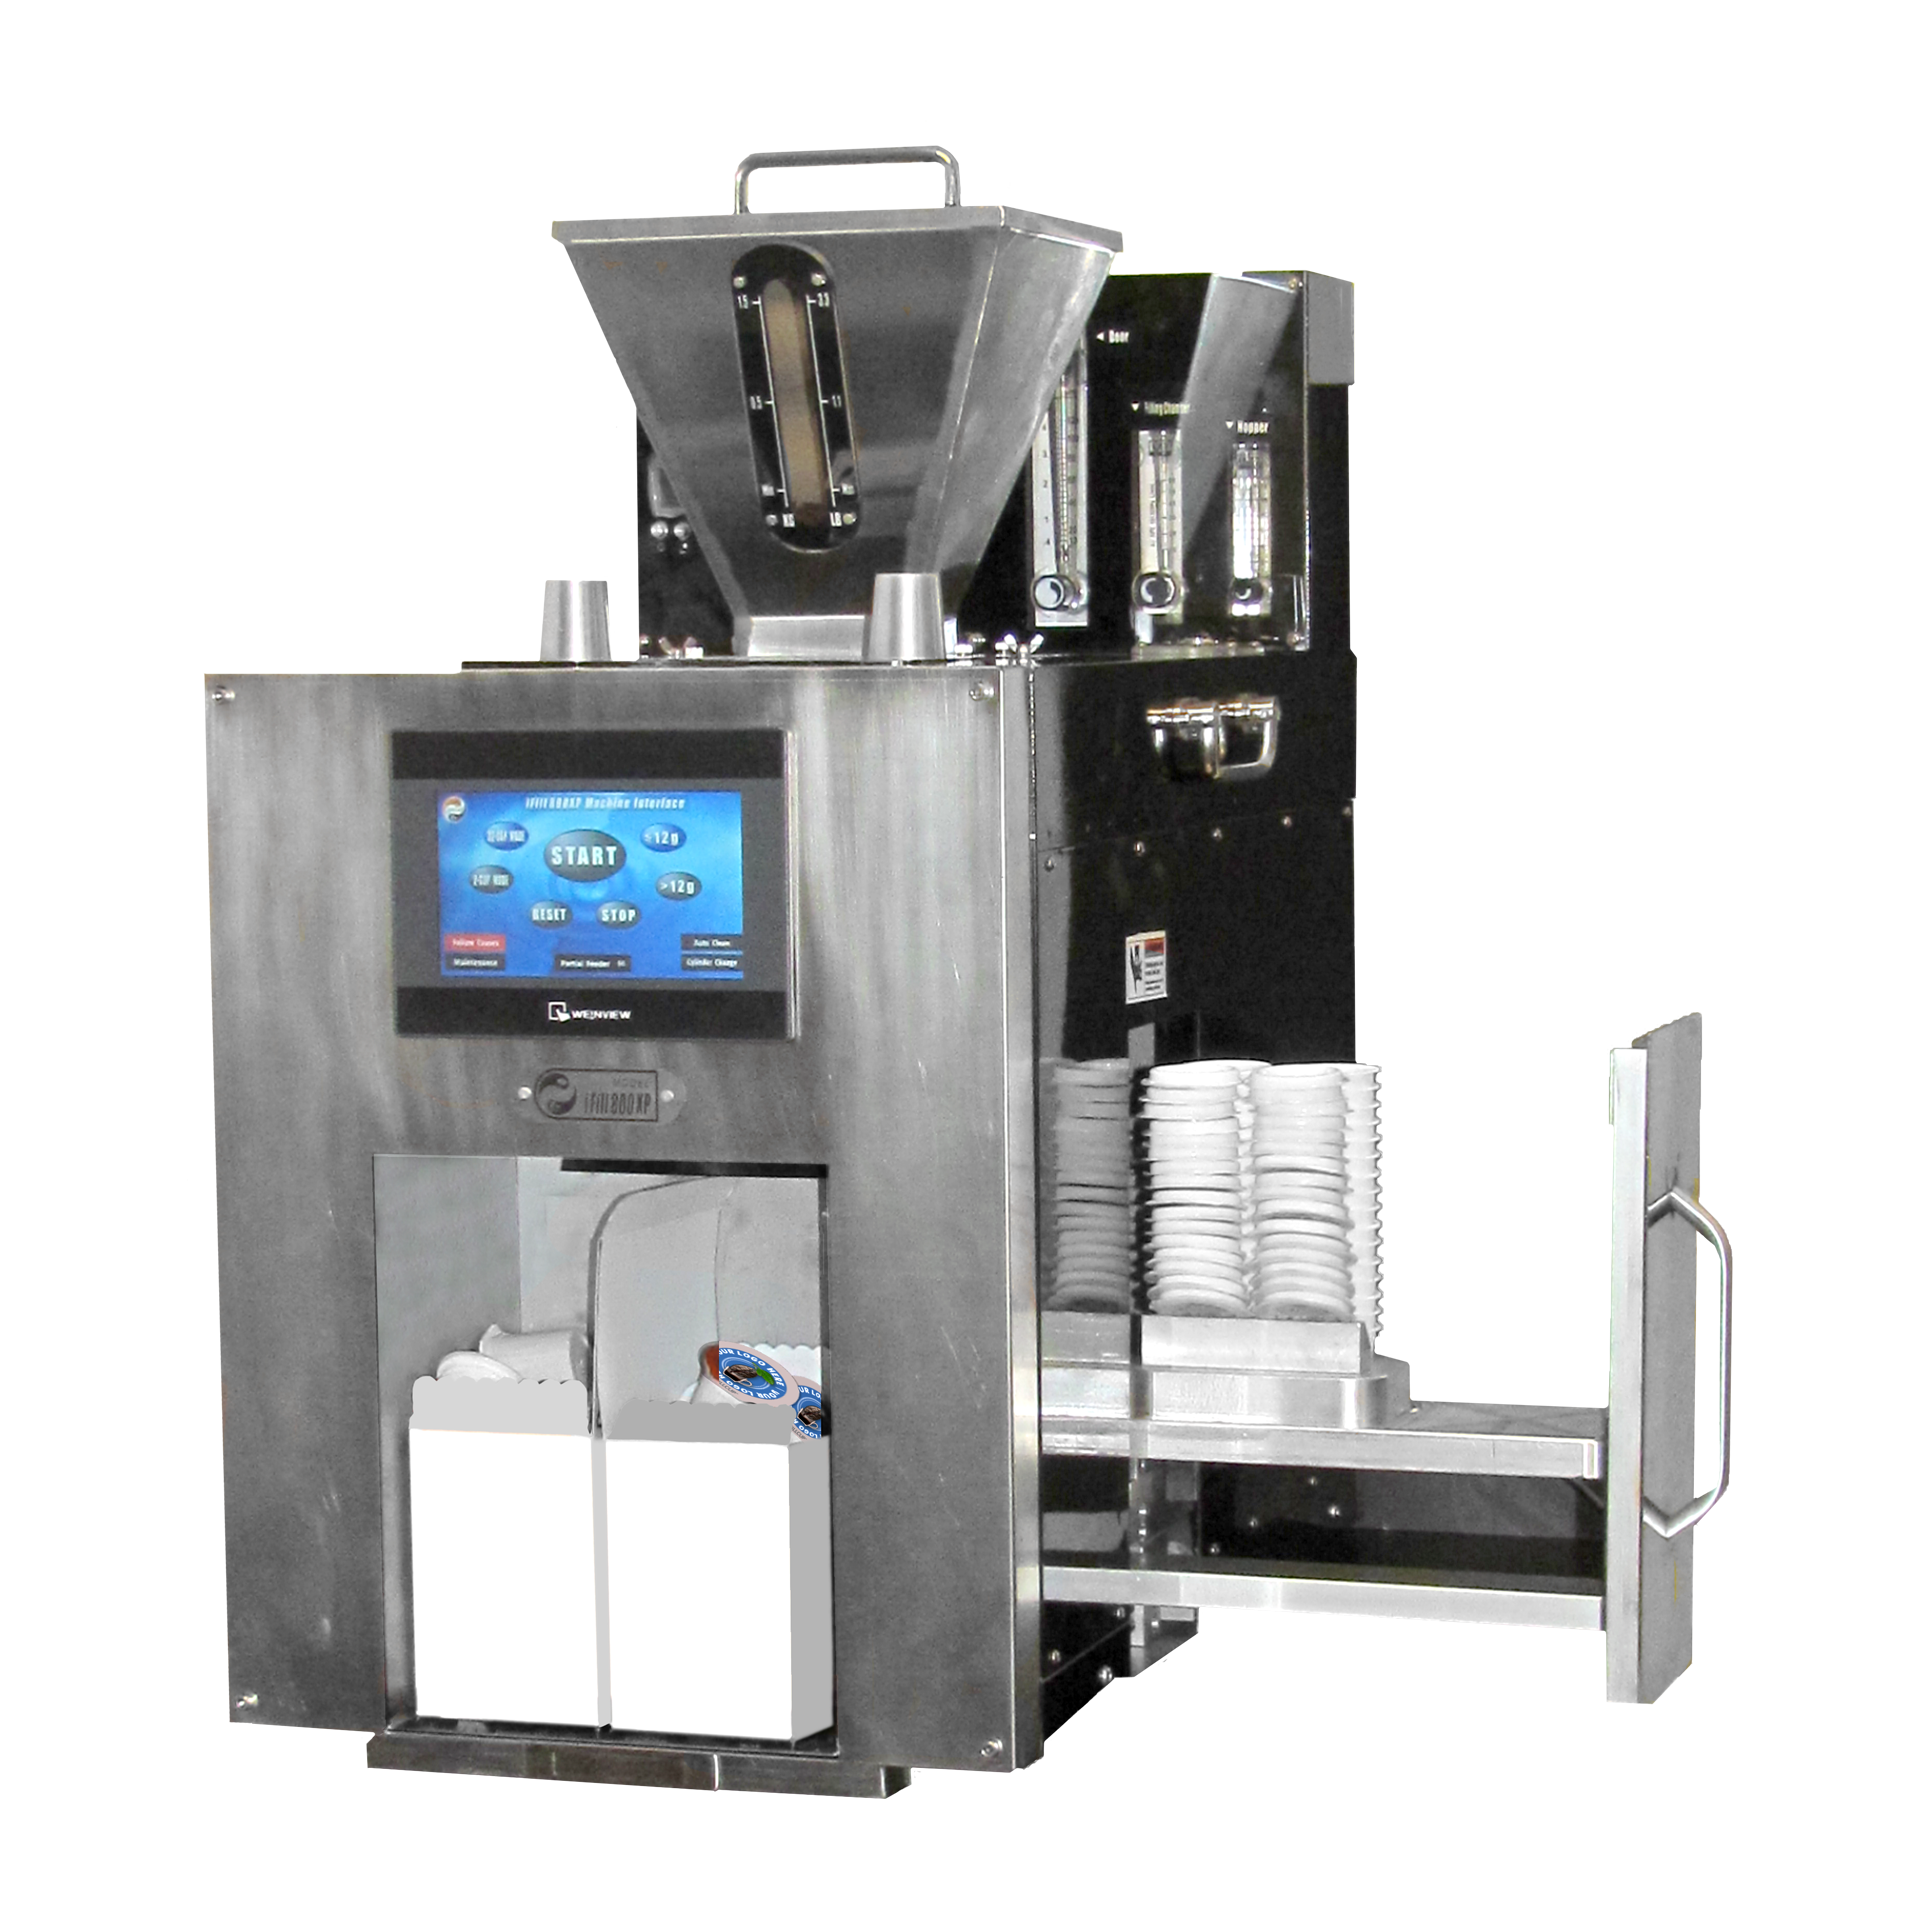 iFIllSystems, iFill800xp, Automatic Filling Machine